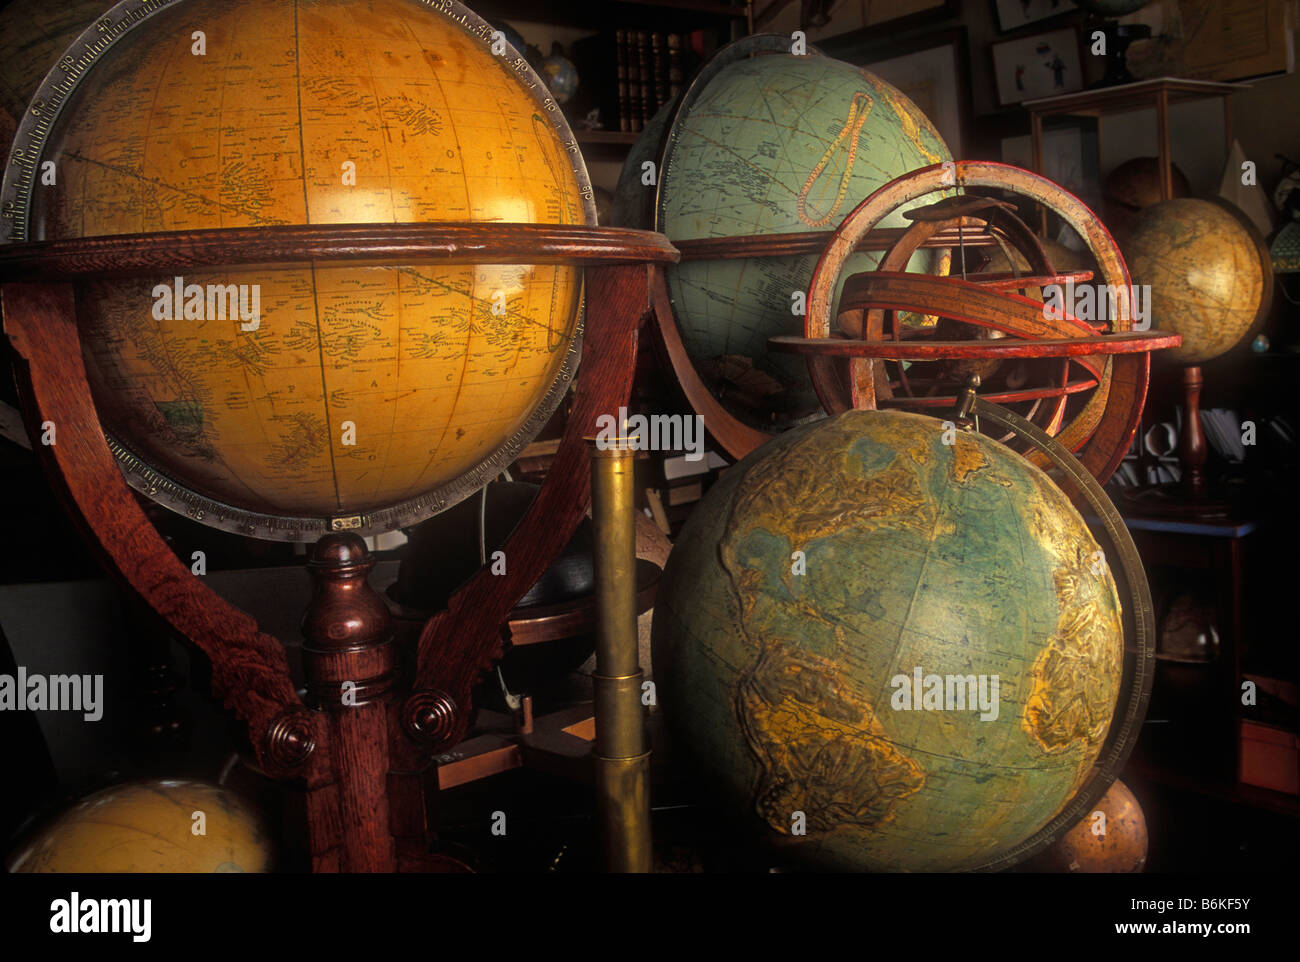 globes collection round information cartography old stil life - Stock Image